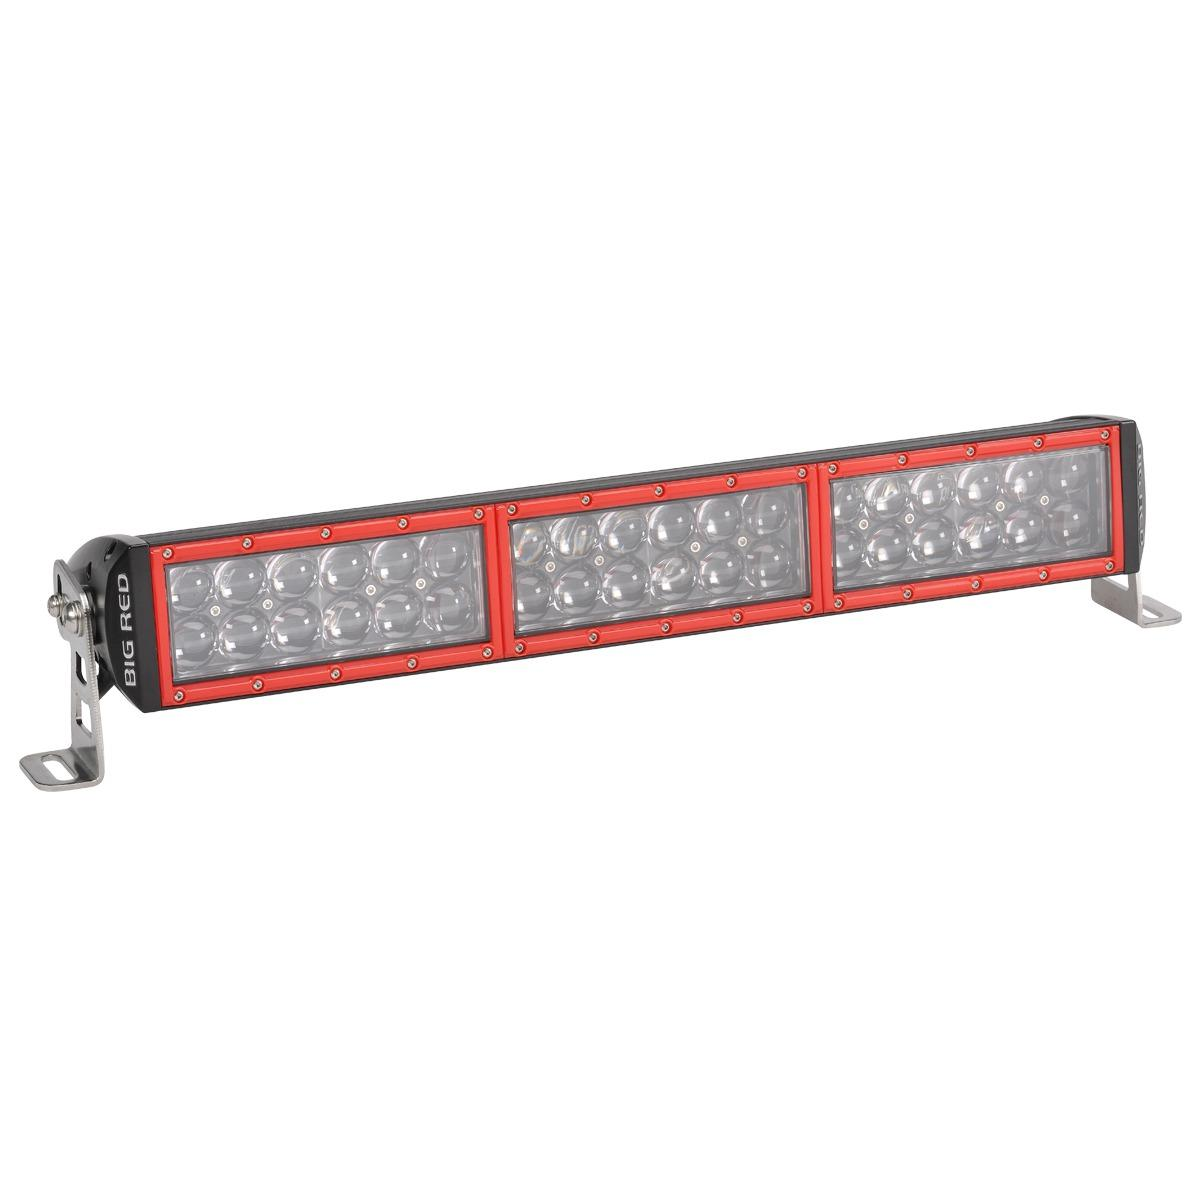 Big red driving light double row 20 180 watt bar home of 12 volt aloadofball Image collections